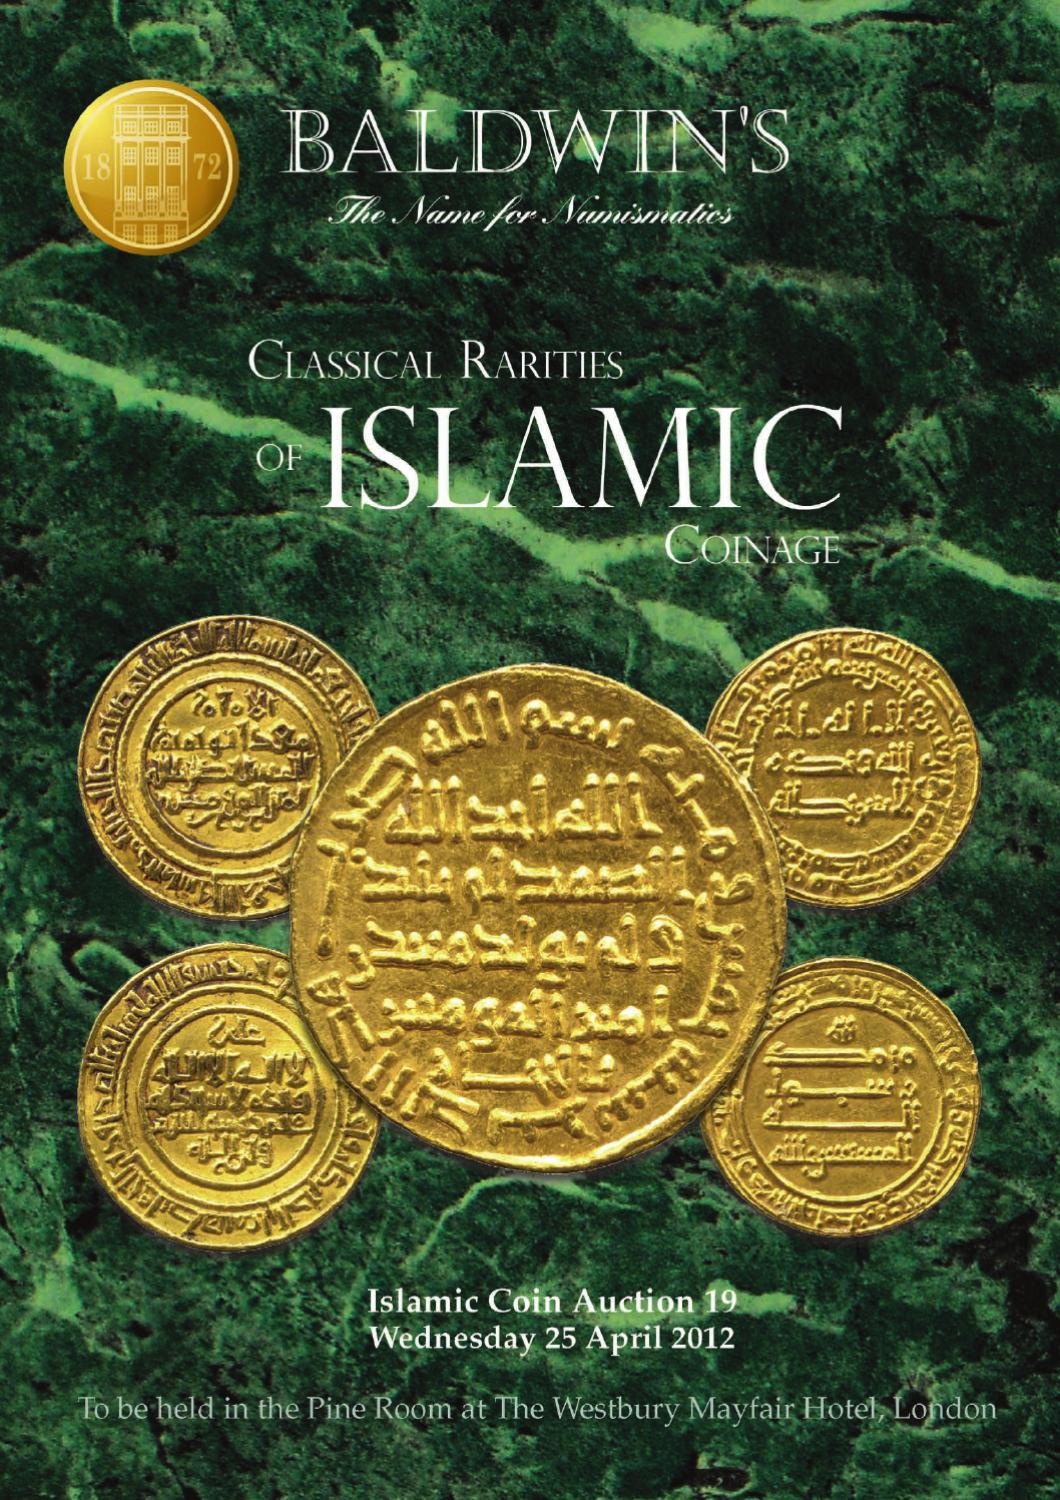 Classical rarities of islamic coinage by a h baldwin for 11 adelphi terrace london wc2n 6bj